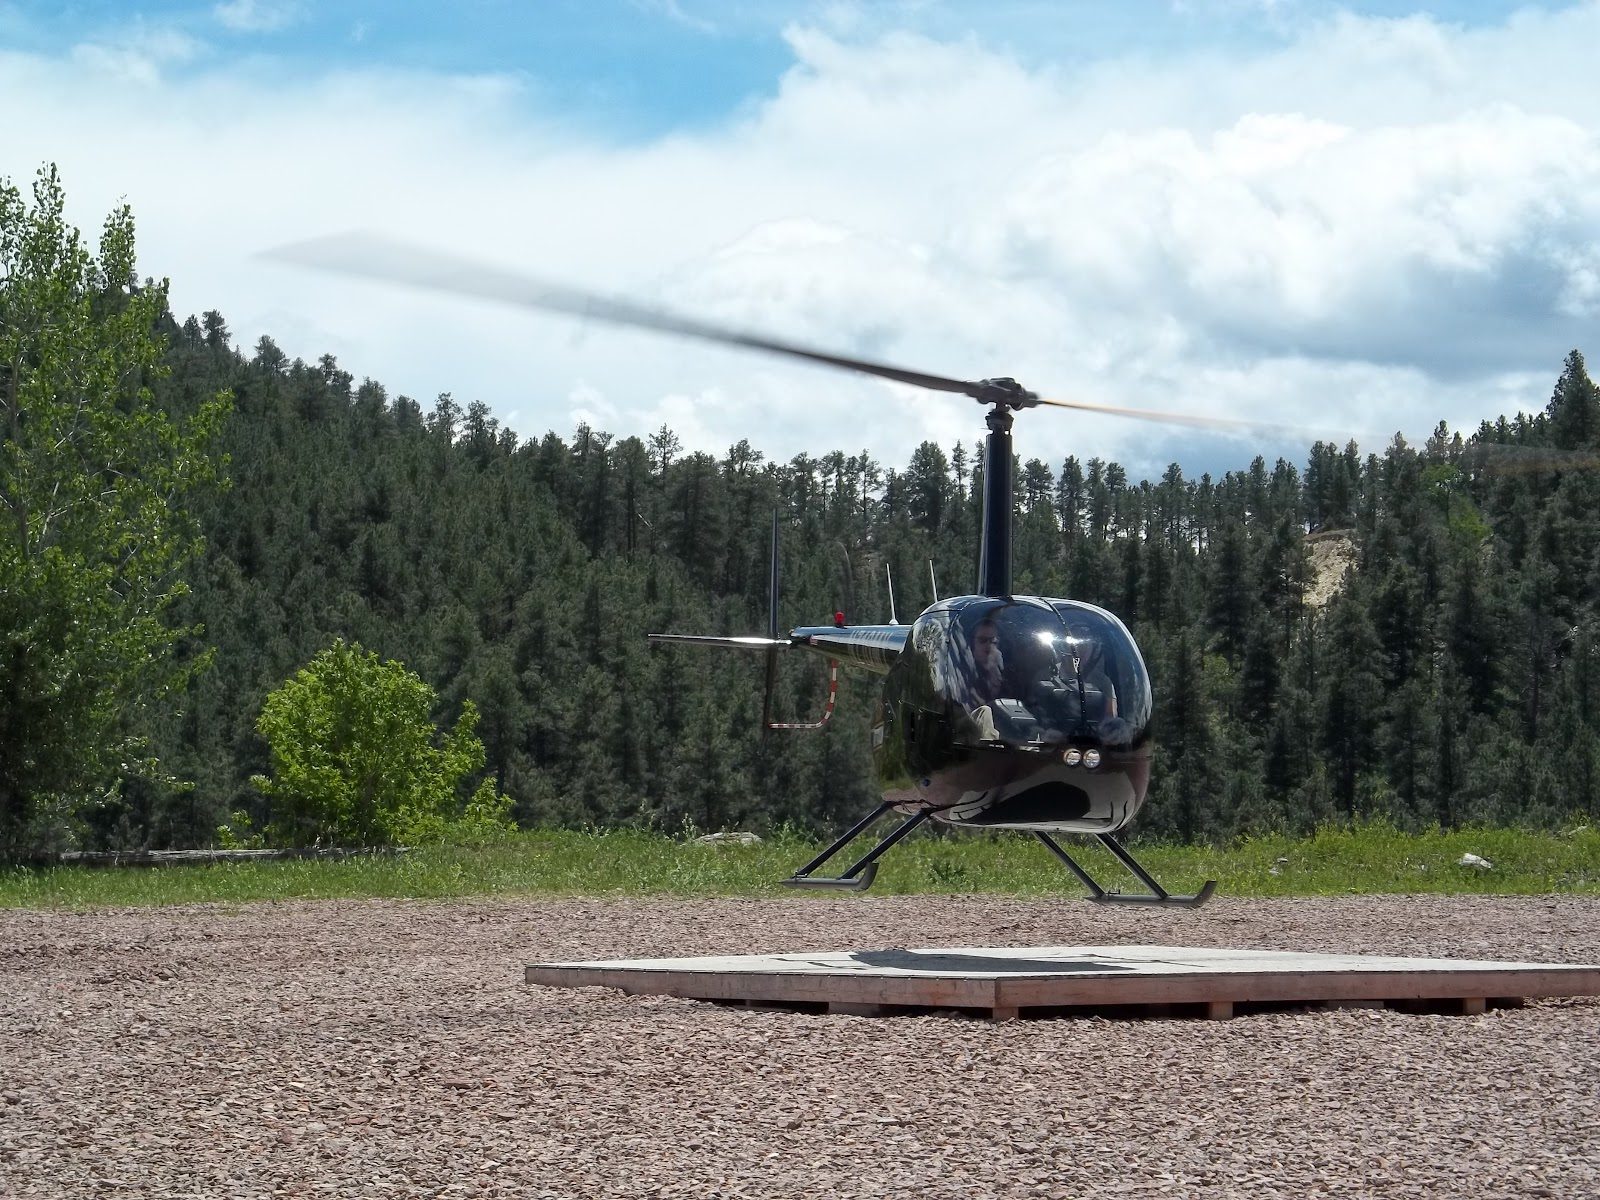 black hills helicopter tours with Mount Rushmore Helicopter Tour Or Rob on Mount Rushmore Helicopter Tour Or Rob also qtlv as well Tours Sightseeing also Things To Do Black Hills South Dakota furthermore Get A Helicopter Tour With Bh Aerial Adventures For 50 Off.